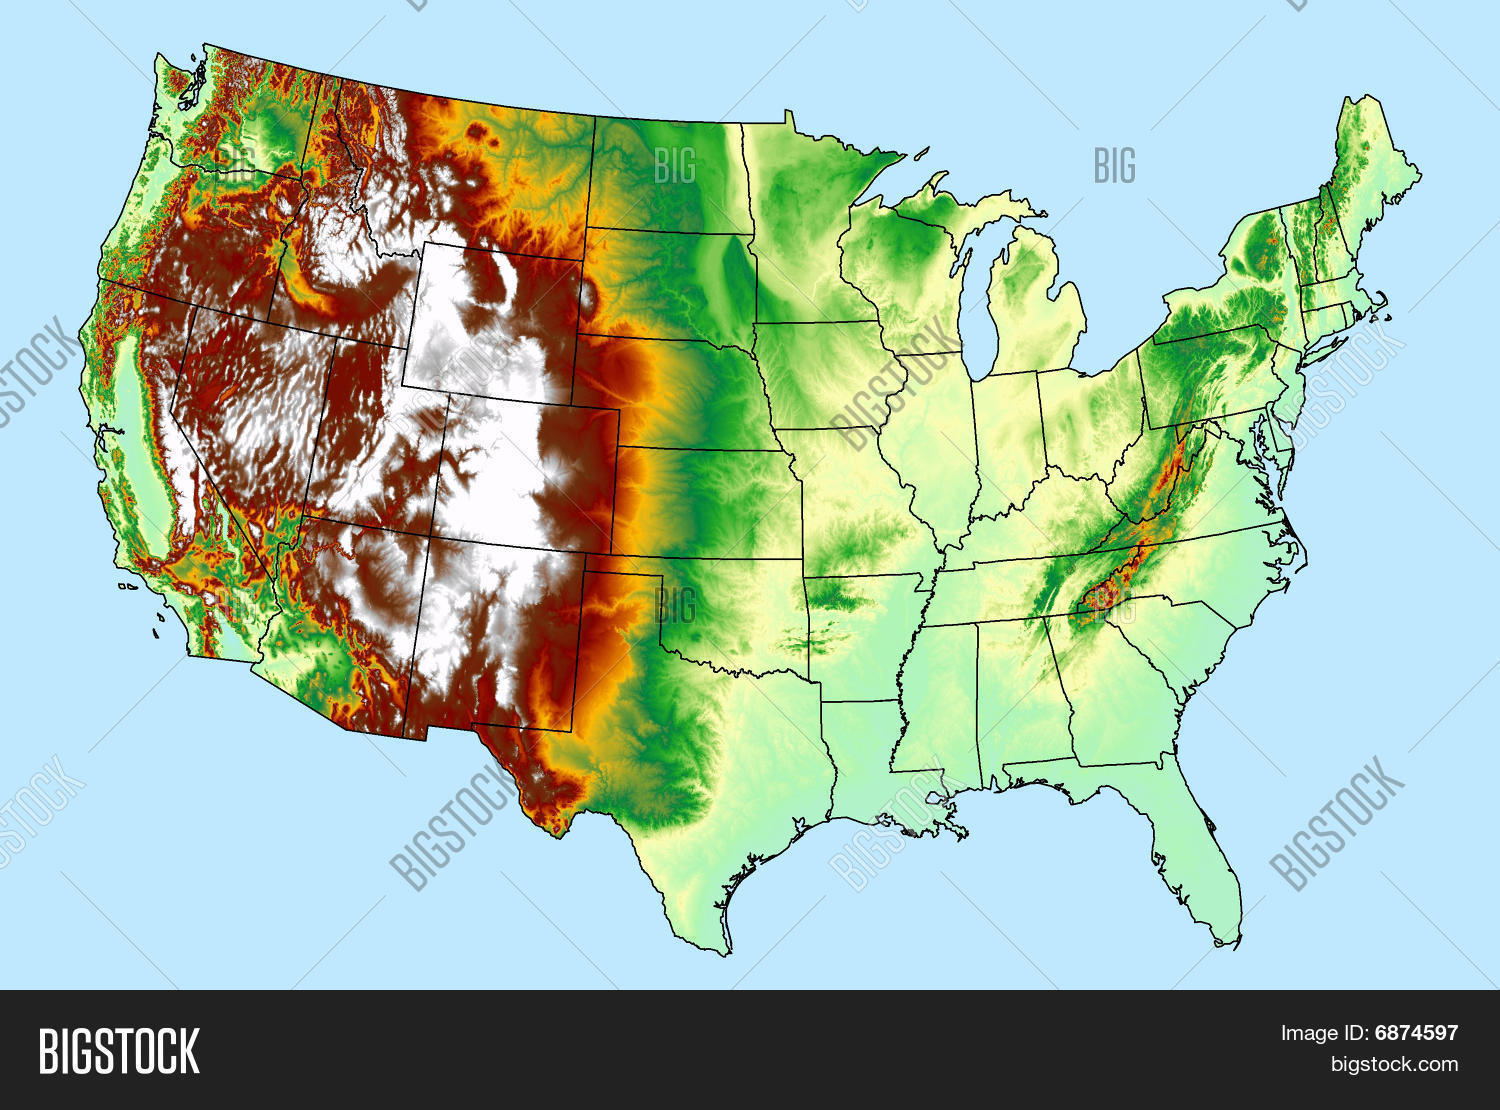 USA DEM DTM Elevation Model Map Image Photo Bigstock - Us map elevation